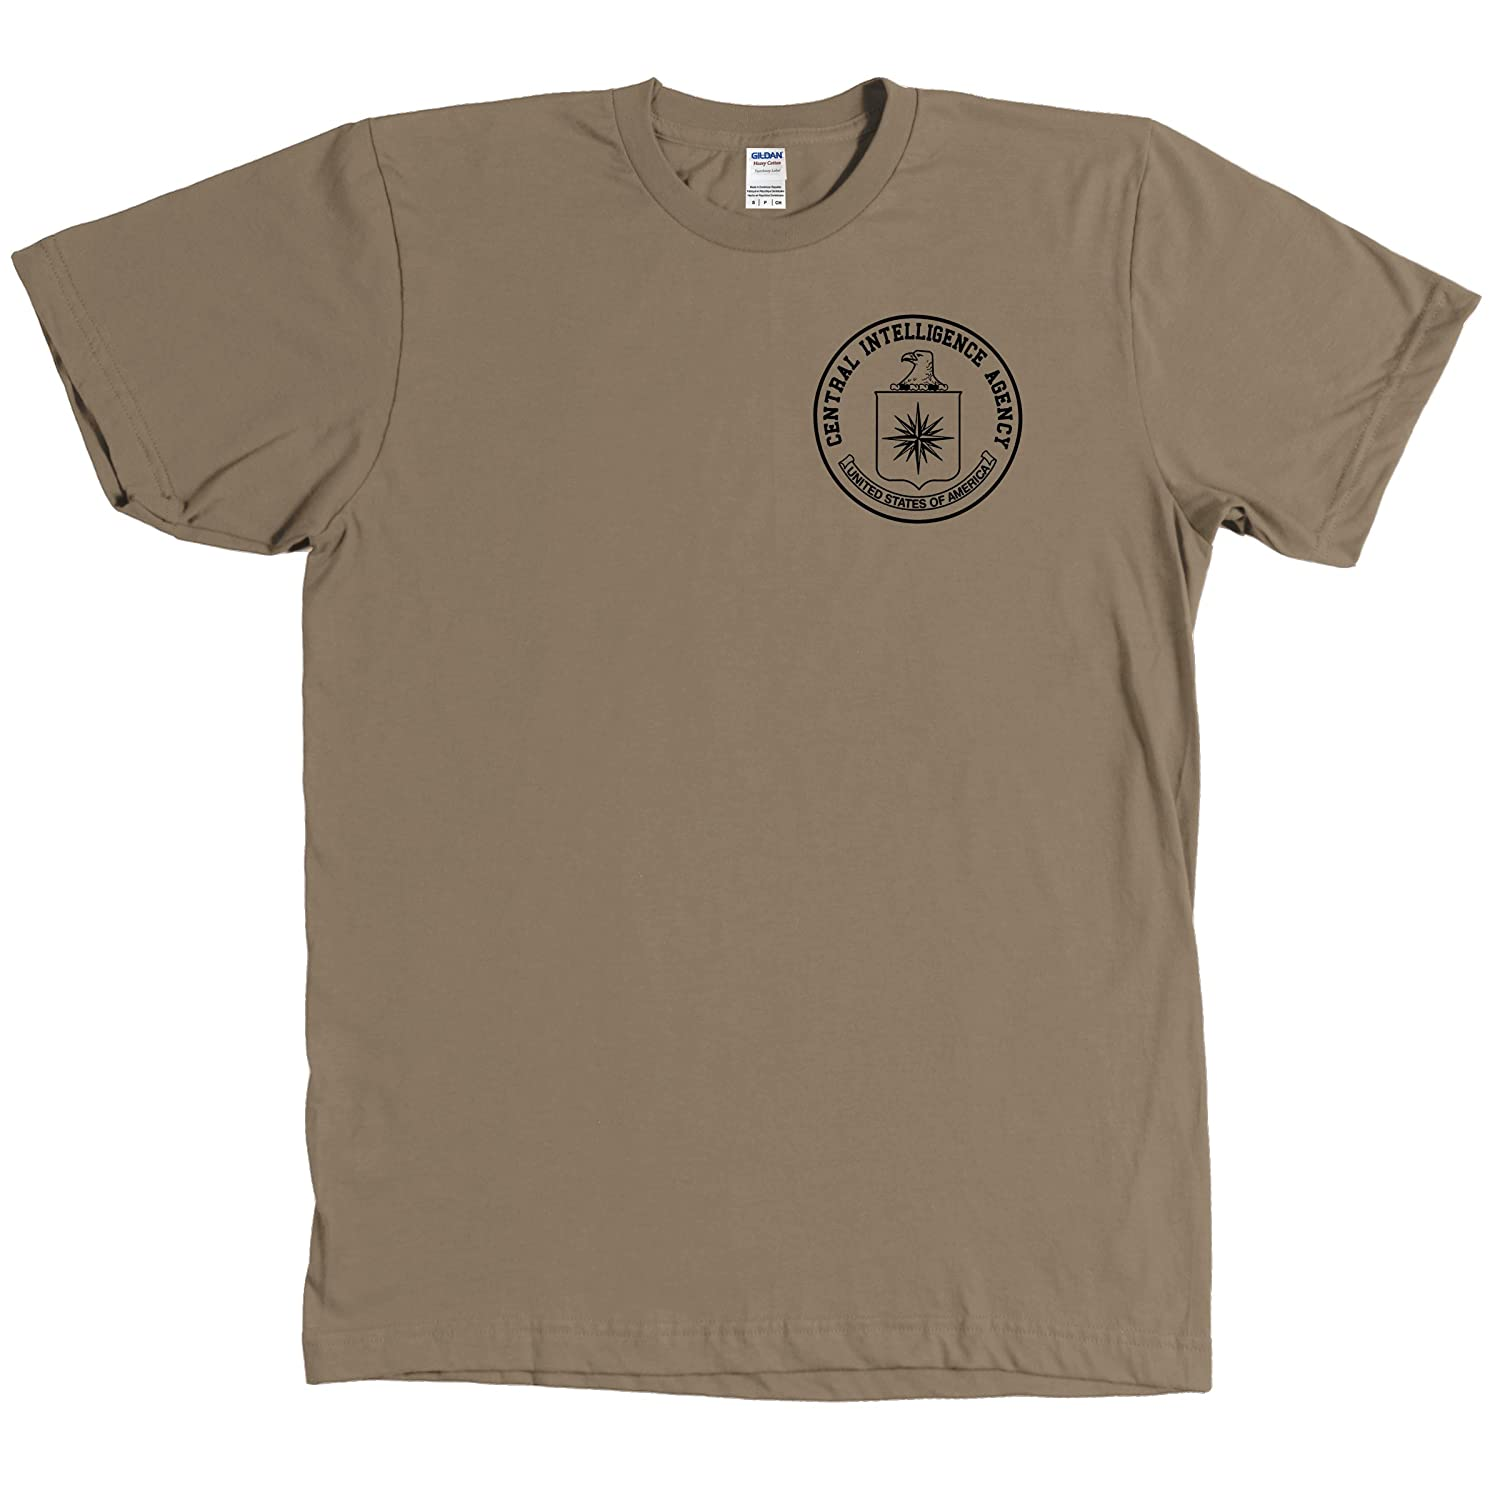 CIA Central Intelligence Agency Blacked Out Seal Shirt USA - MORE COLORS | Amazon.com